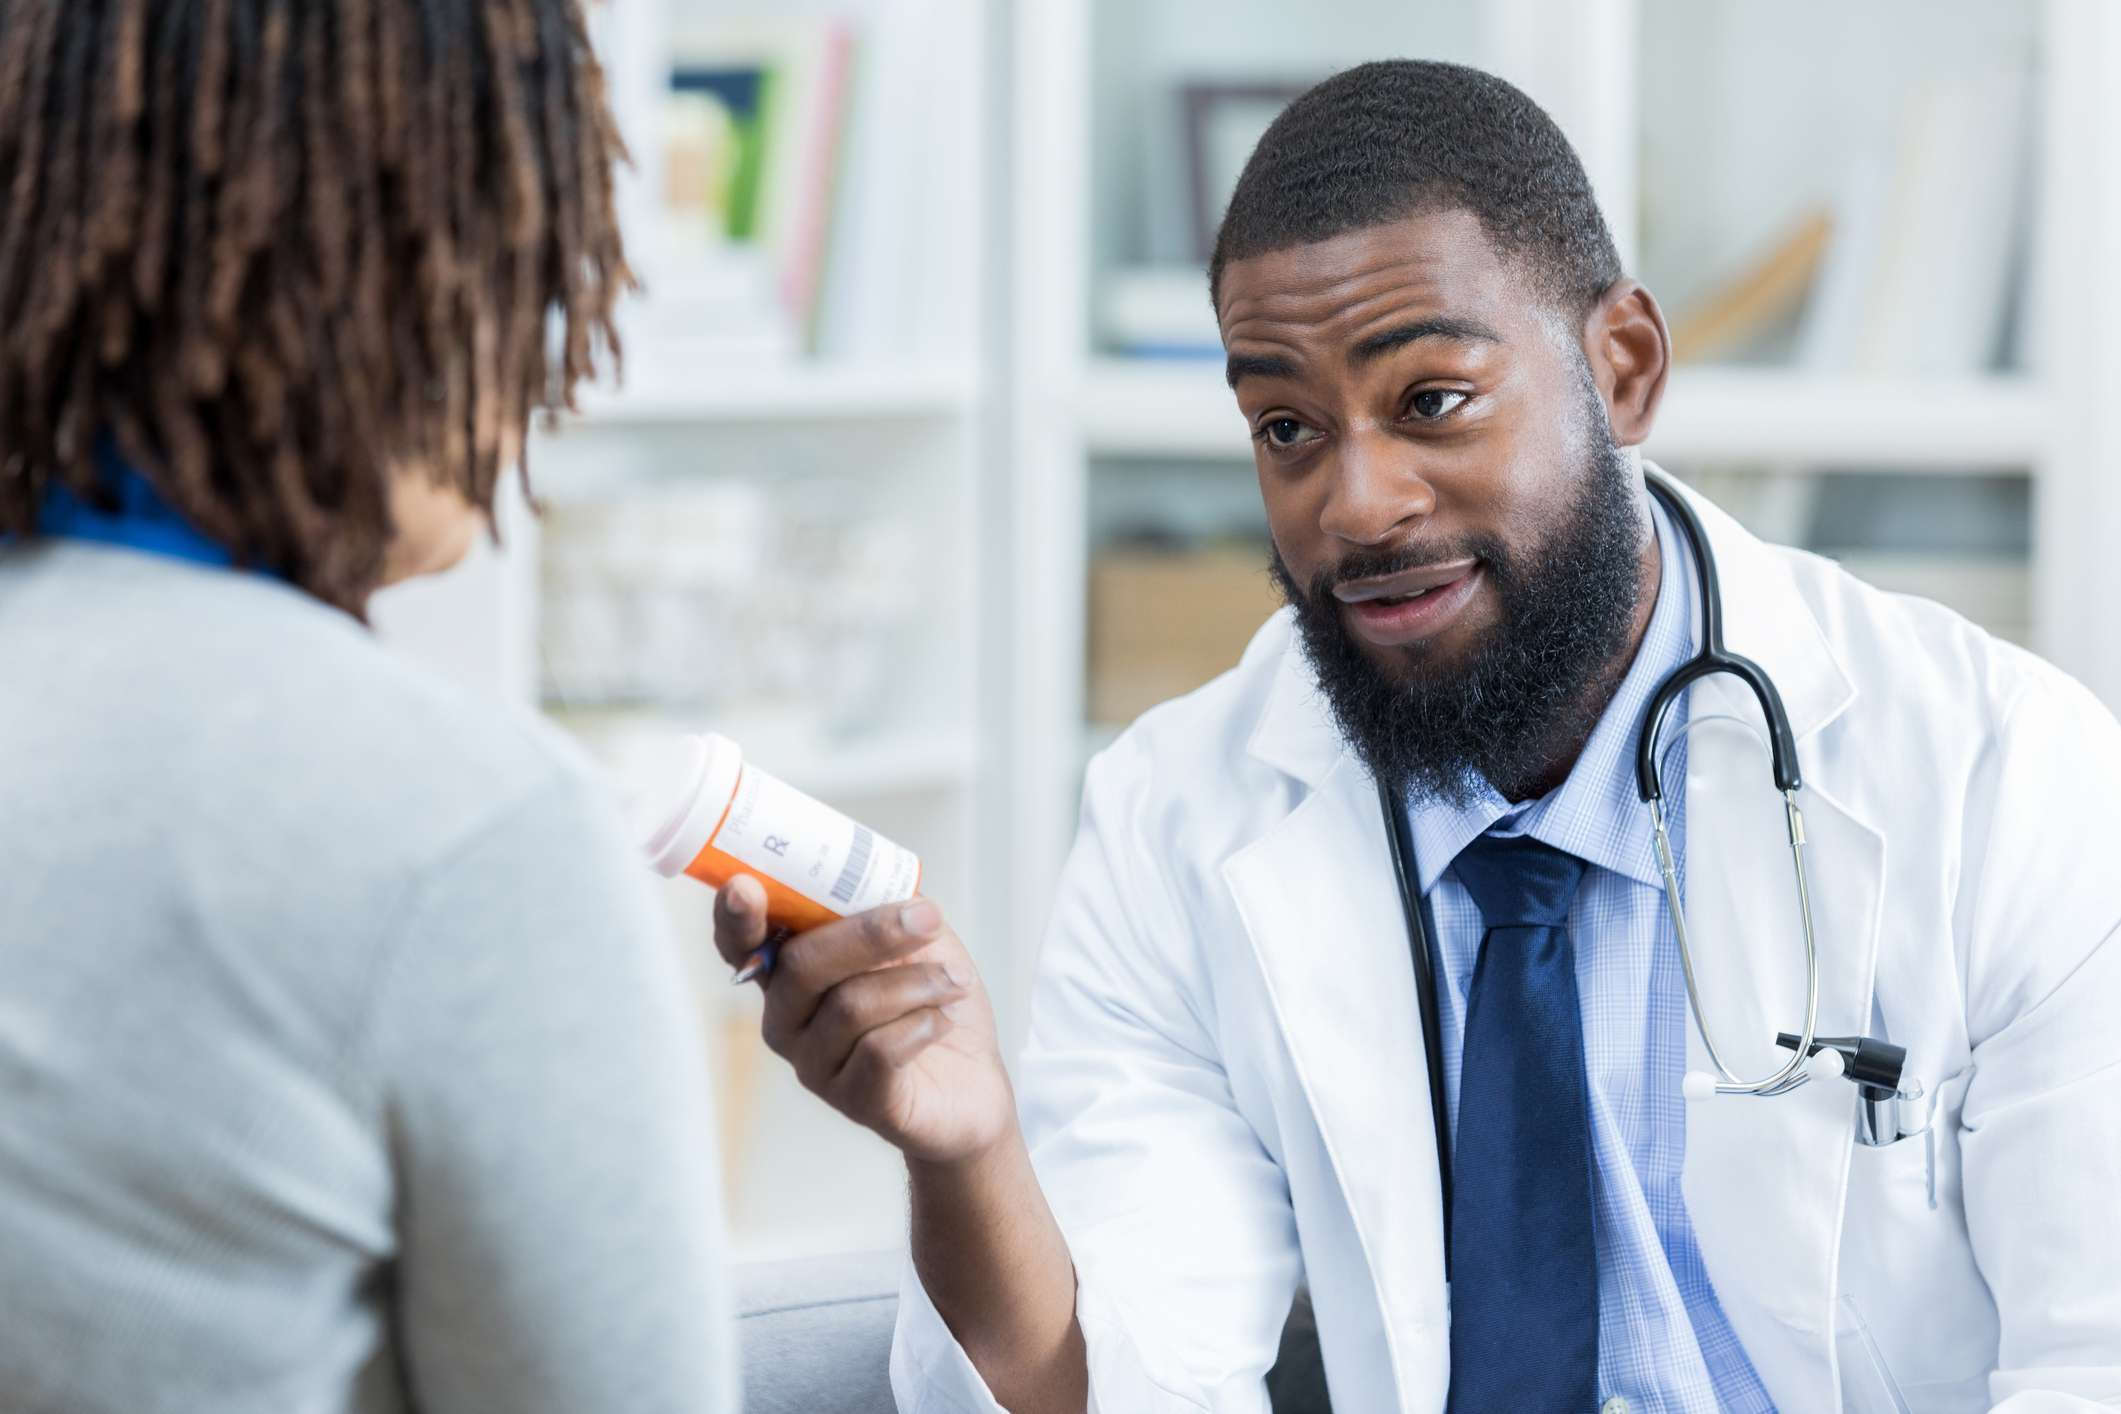 A male doctor discusses a prescription medication with a female patient. The doctor is holding the medication.